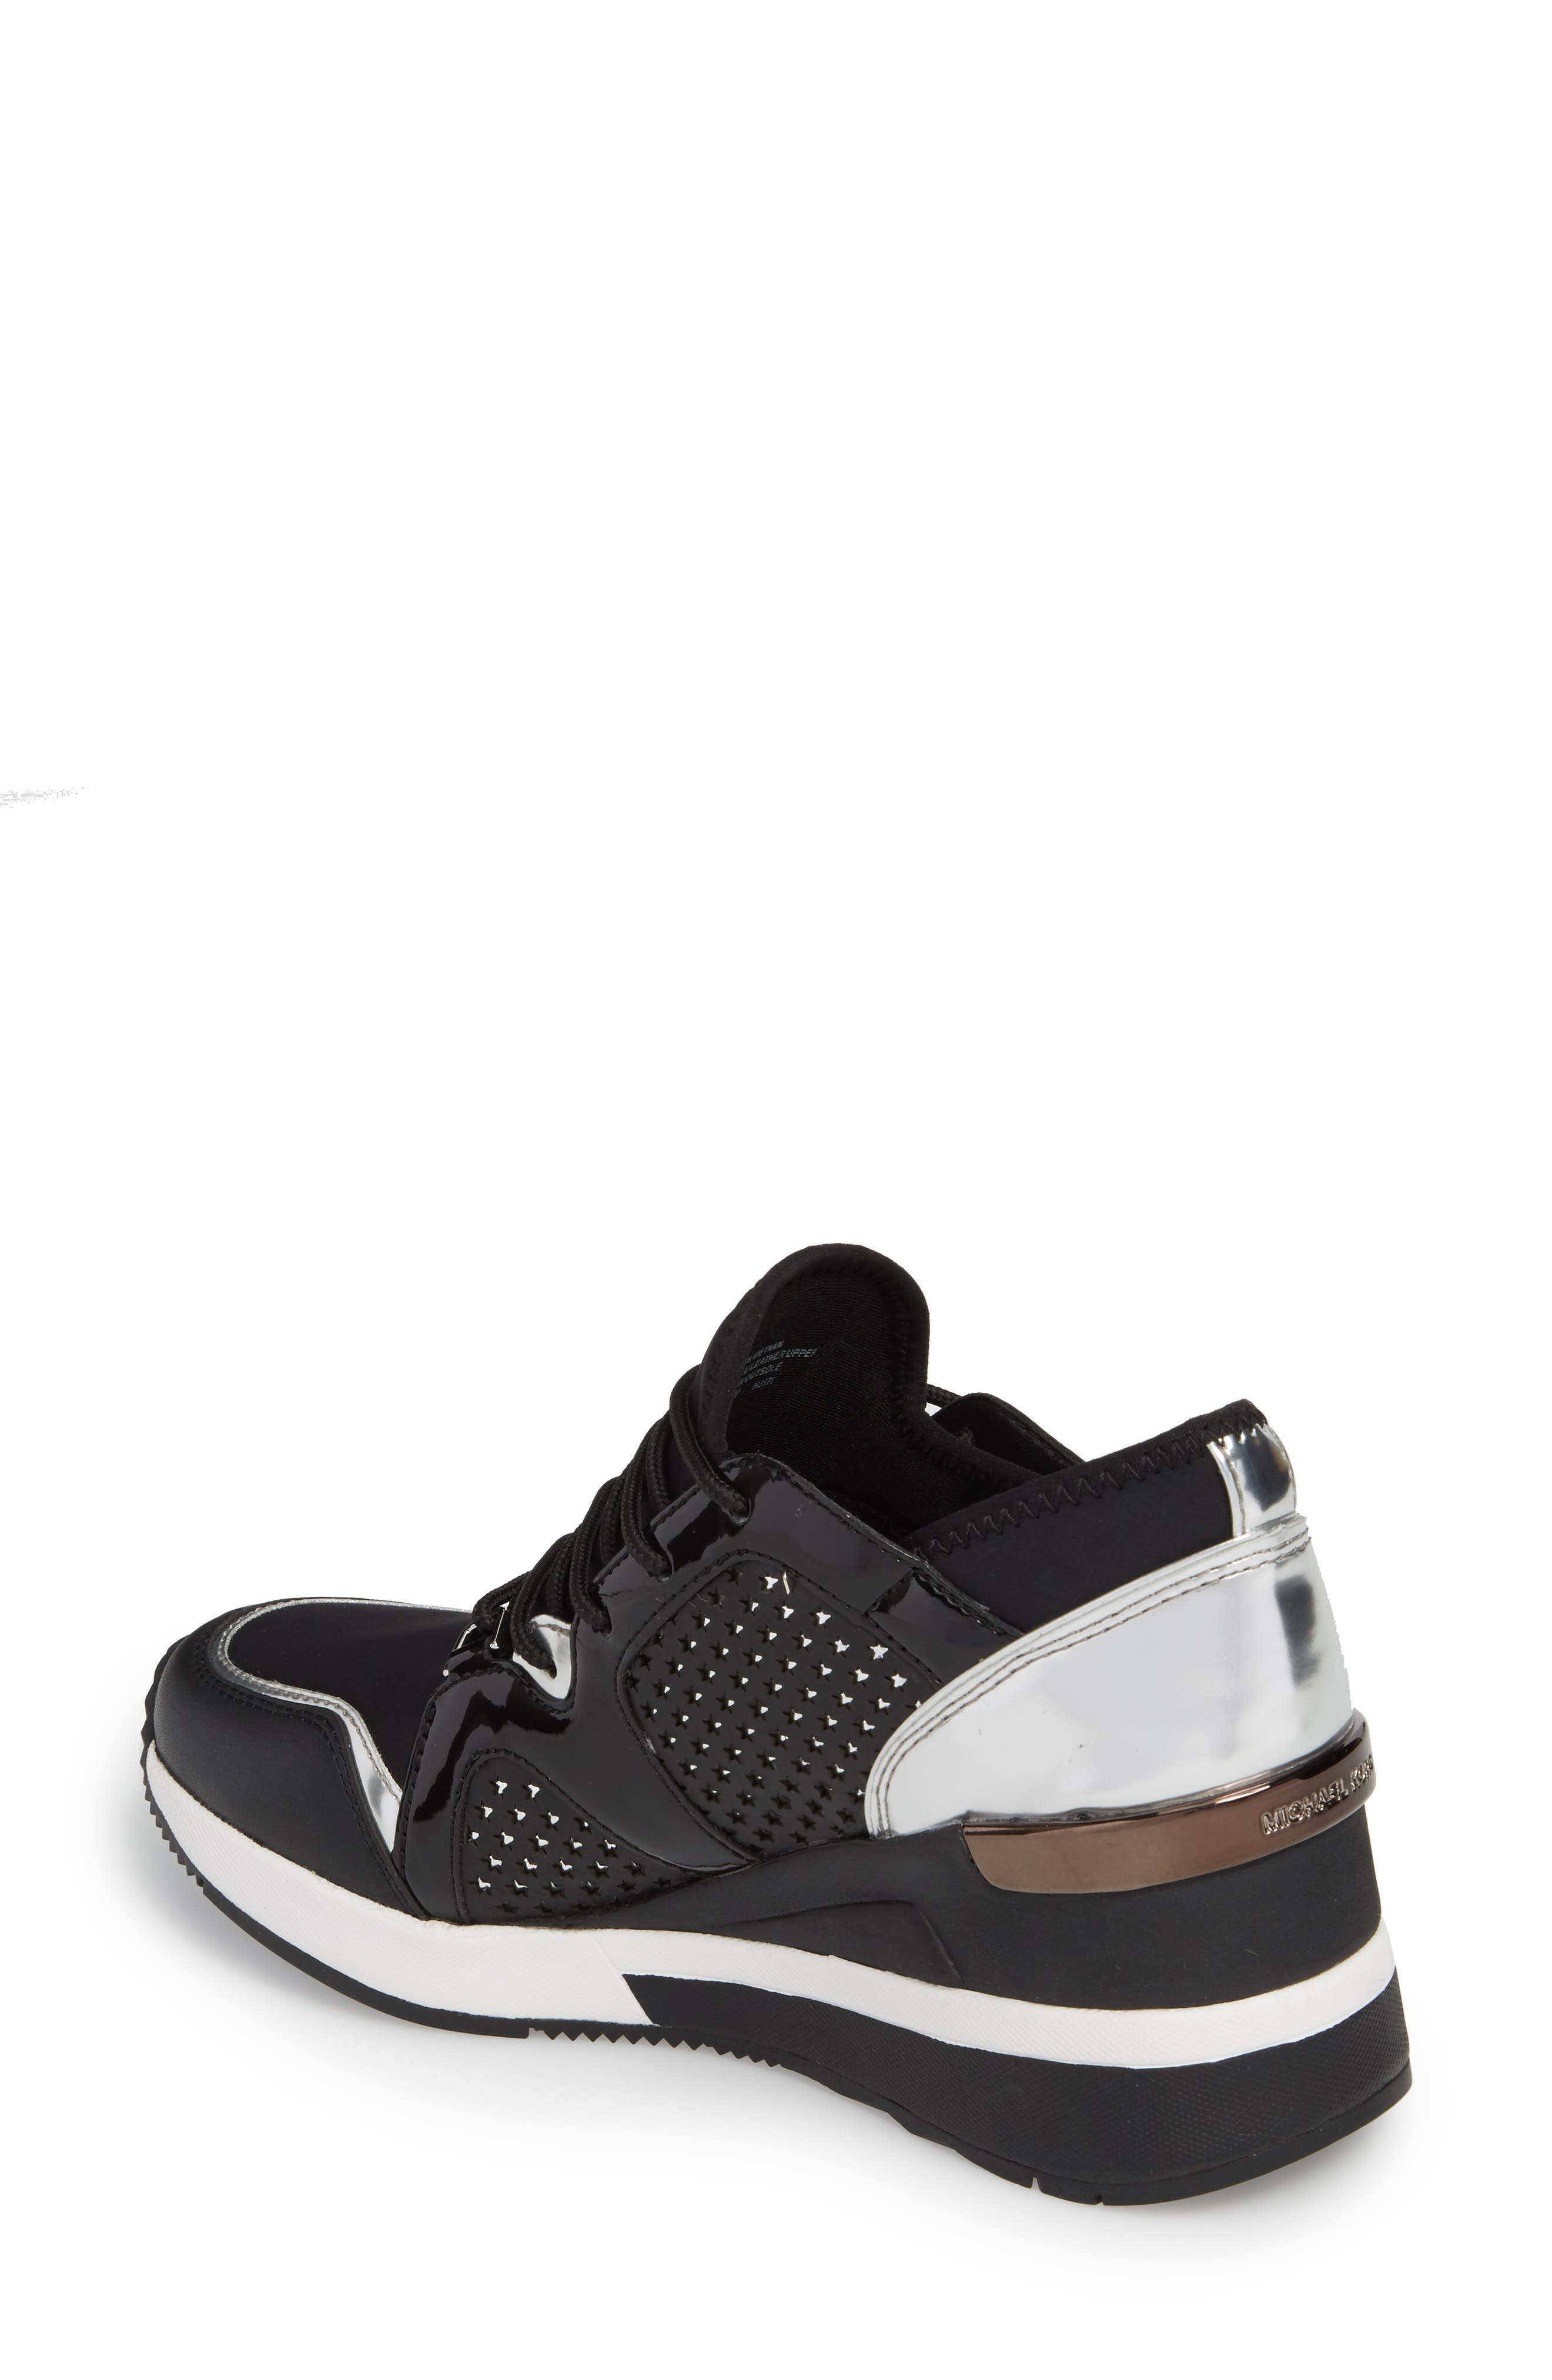 Scout Wedge Sneaker,                             Alternate thumbnail 2, color,                             002